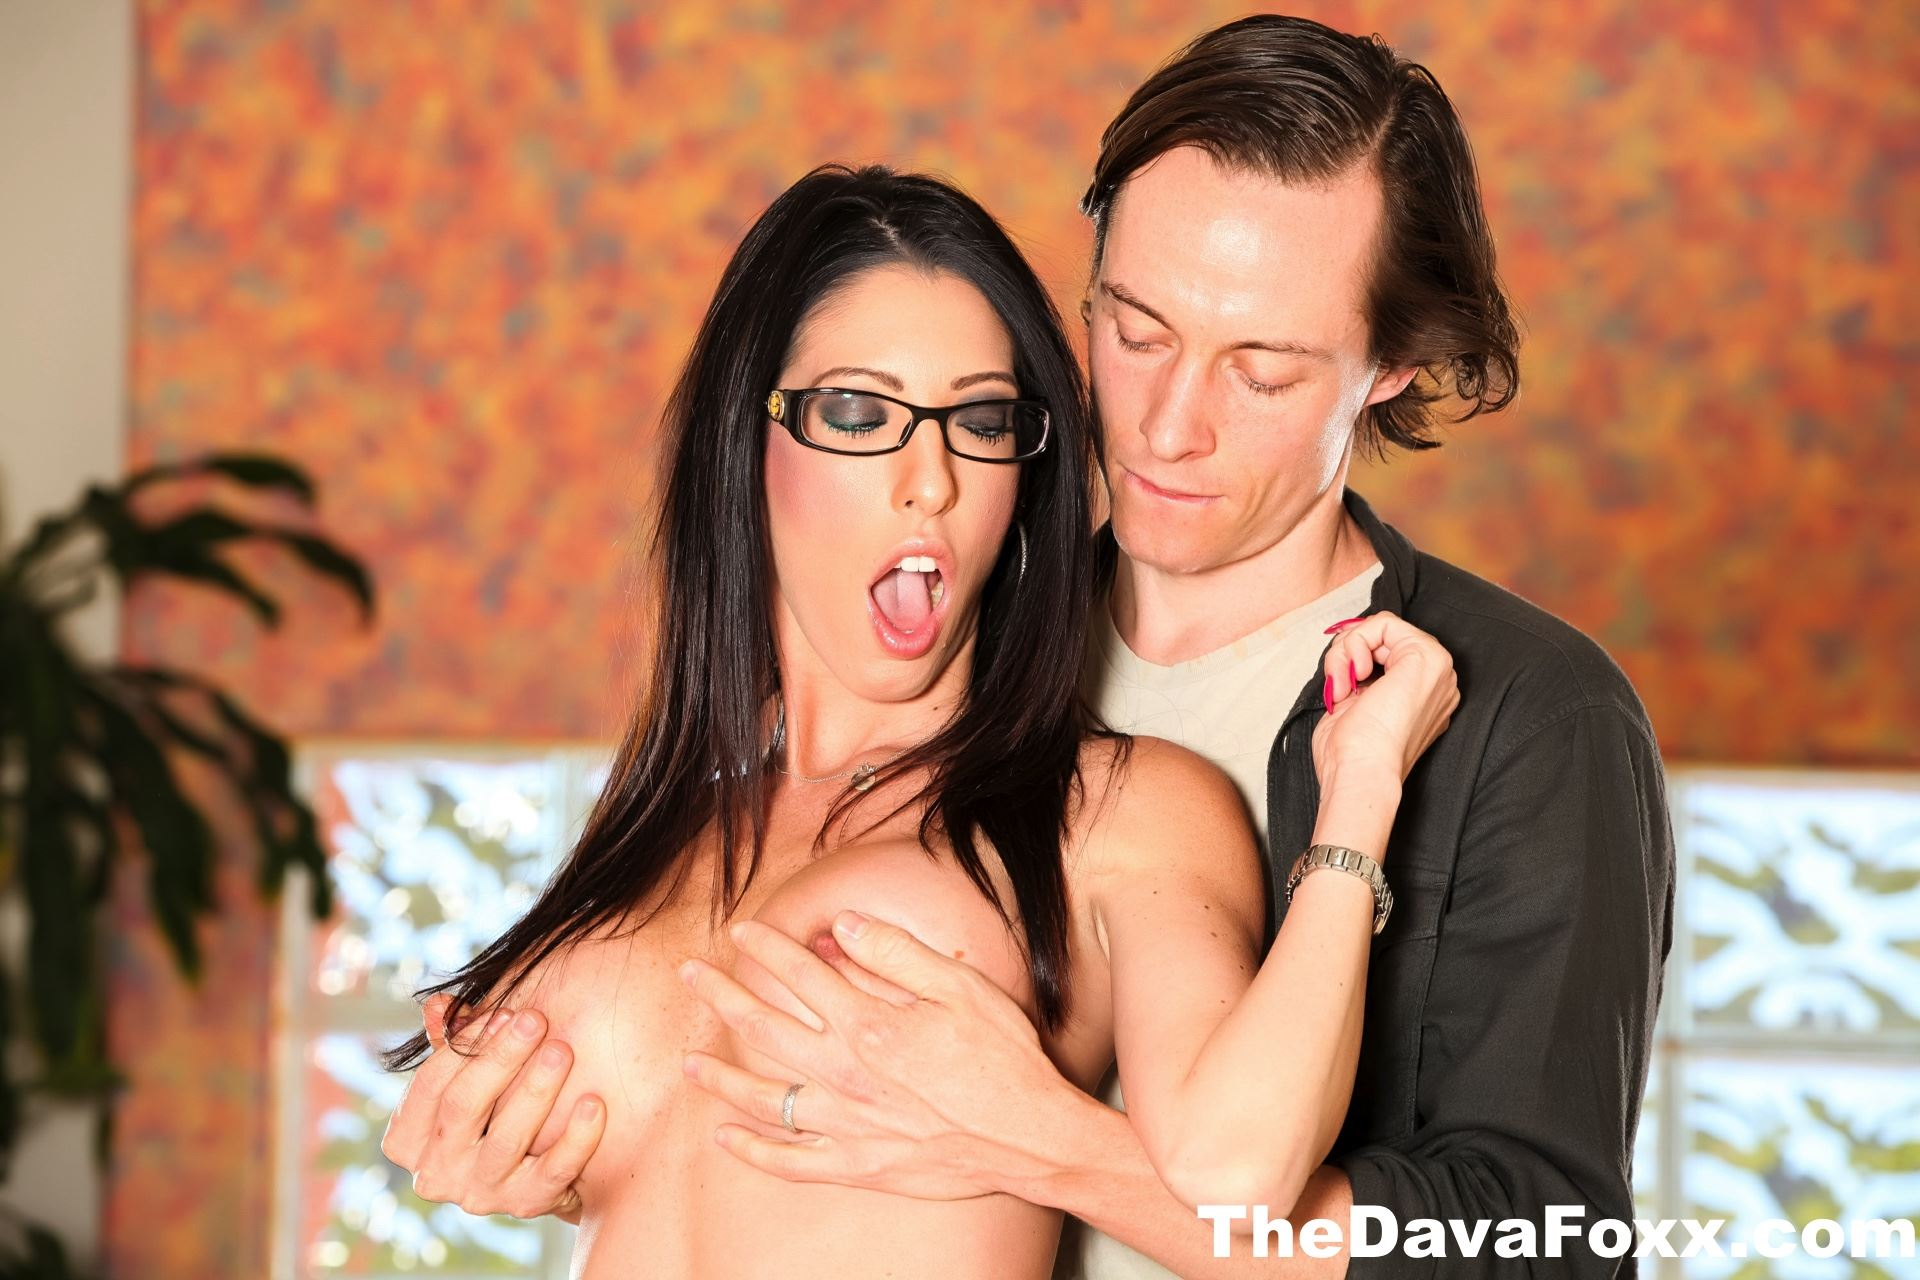 Gallery: Dava Foxx Getting Fucked in Hardcore Sex Orgy